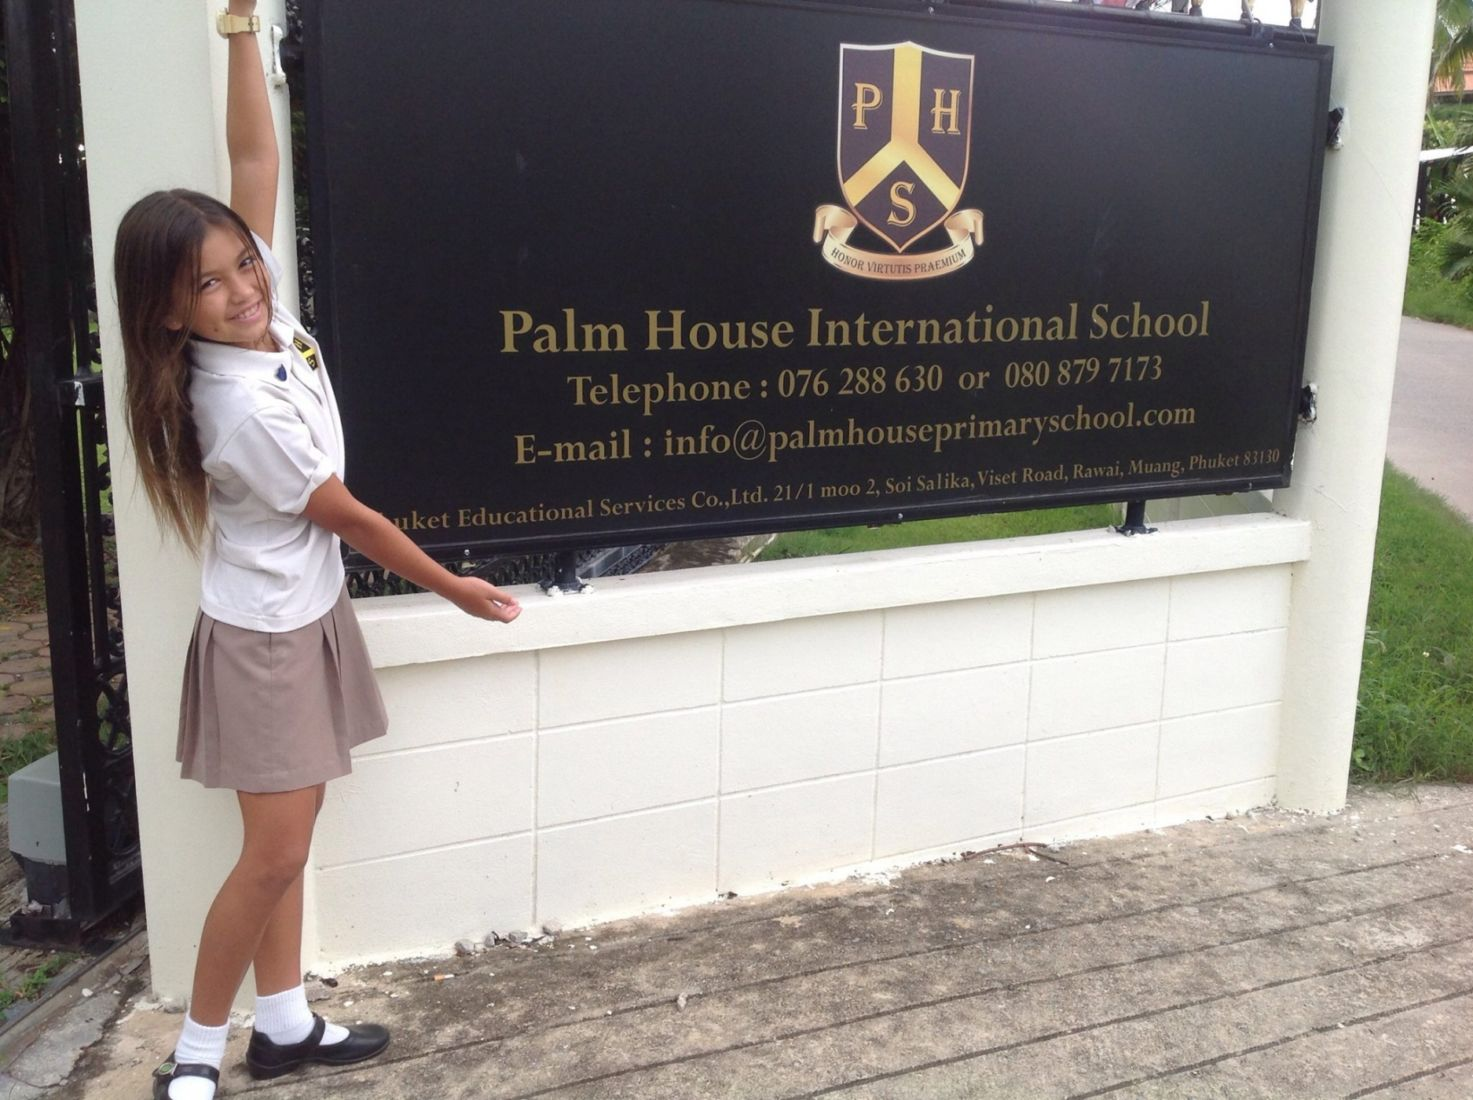 Police have yet to investigate illegal hiring of foreign teachers at international school in Phuket | The Thaiger